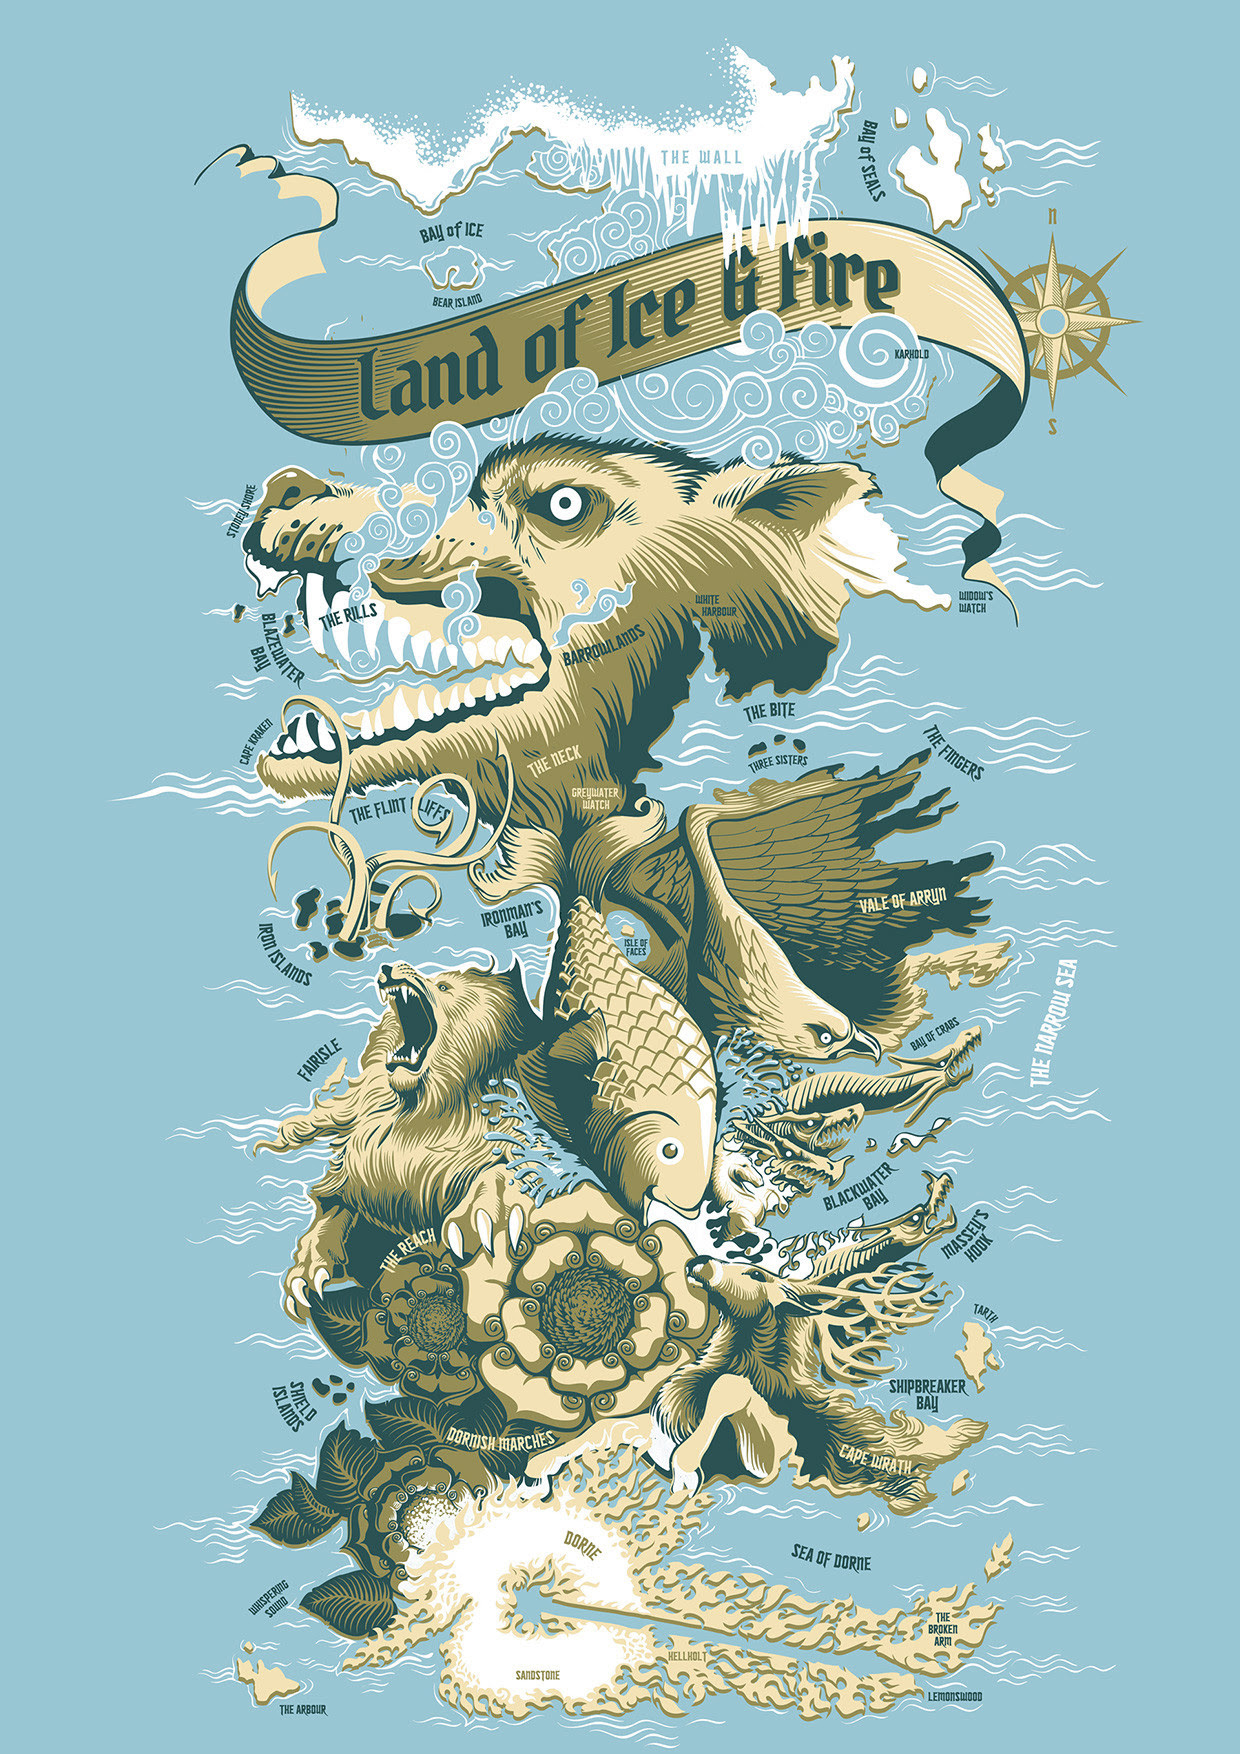 Game of Thrones: Land of Ice & Fire by Steven Tu